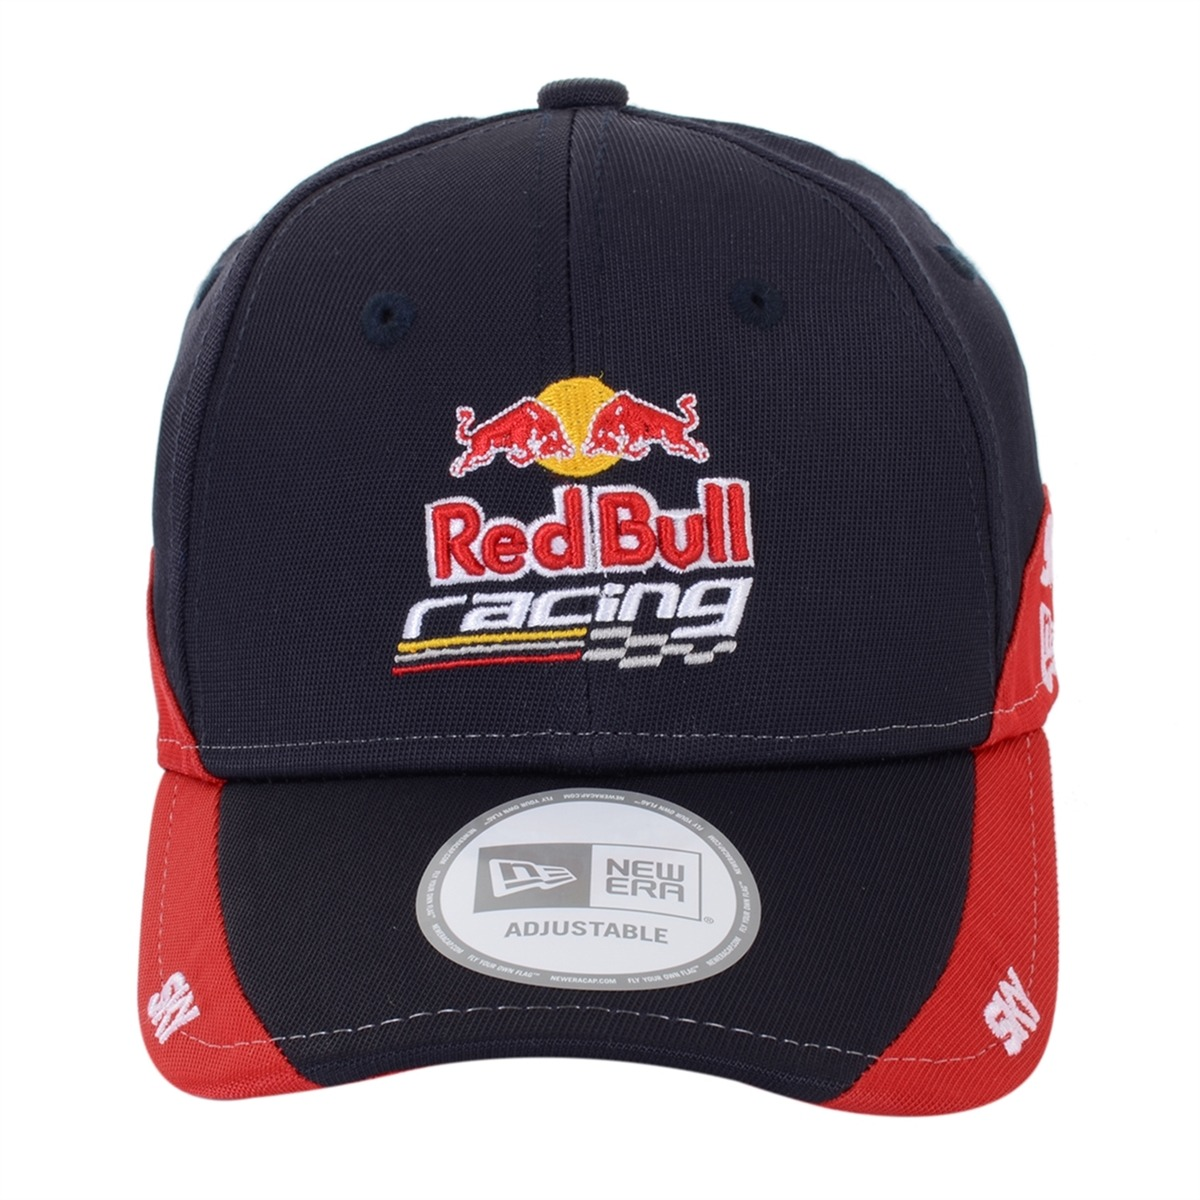 boné aba curva red bull racing infantil bon021 new era. Carregando zoom. 1939b828815